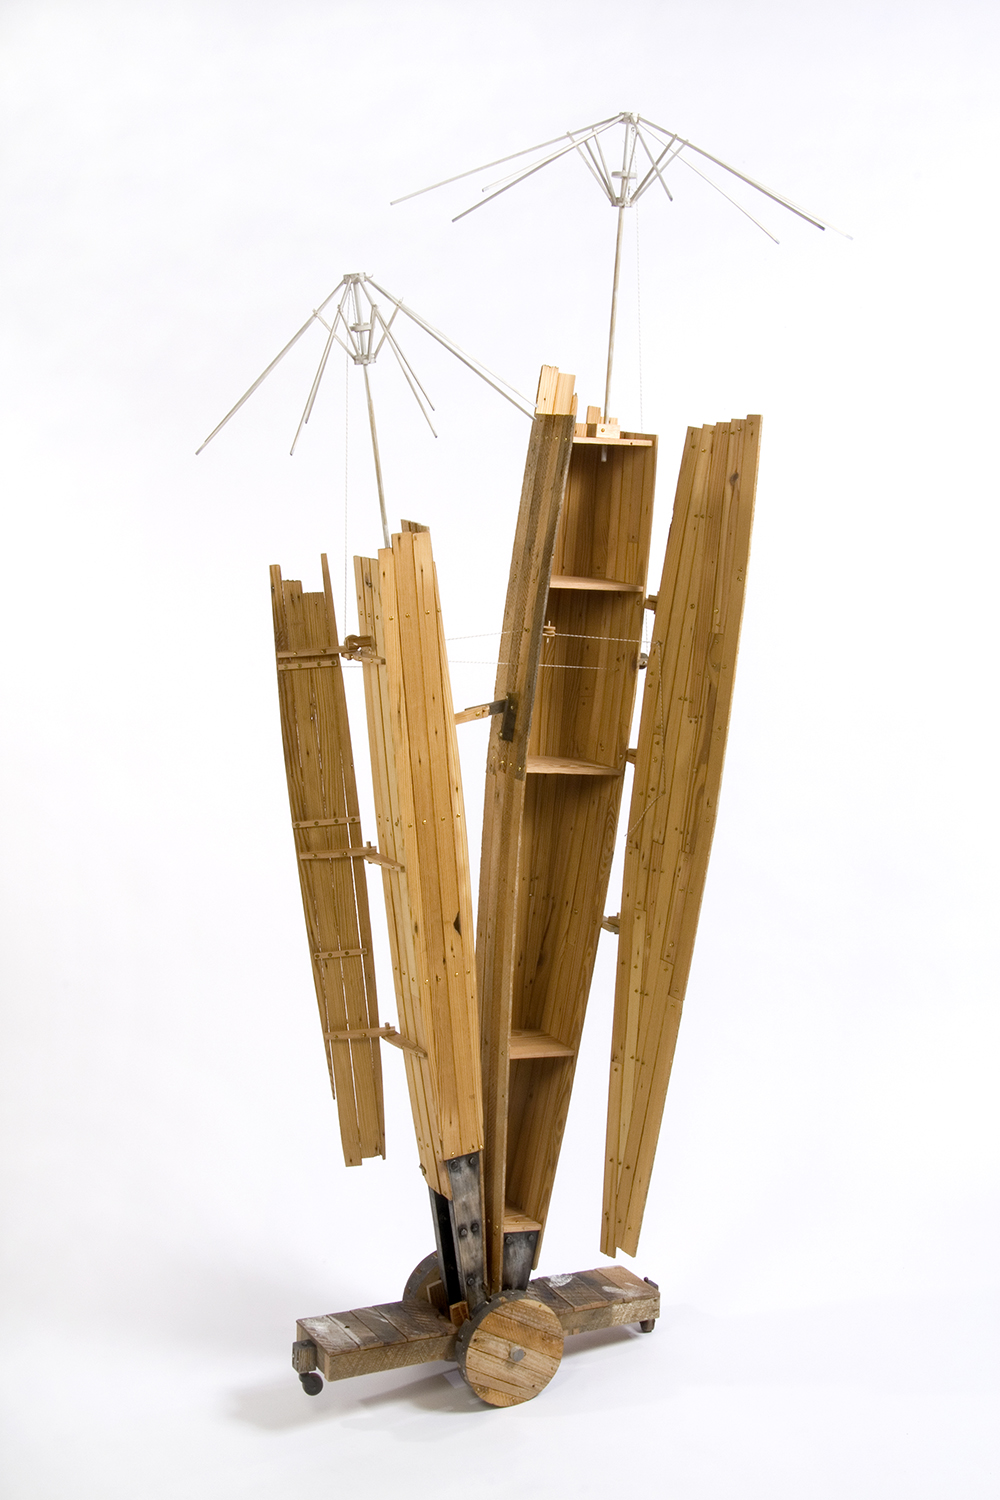 Symbiosis #2: Pair of Cabinets, 2009 (doors and umbrella structures open)